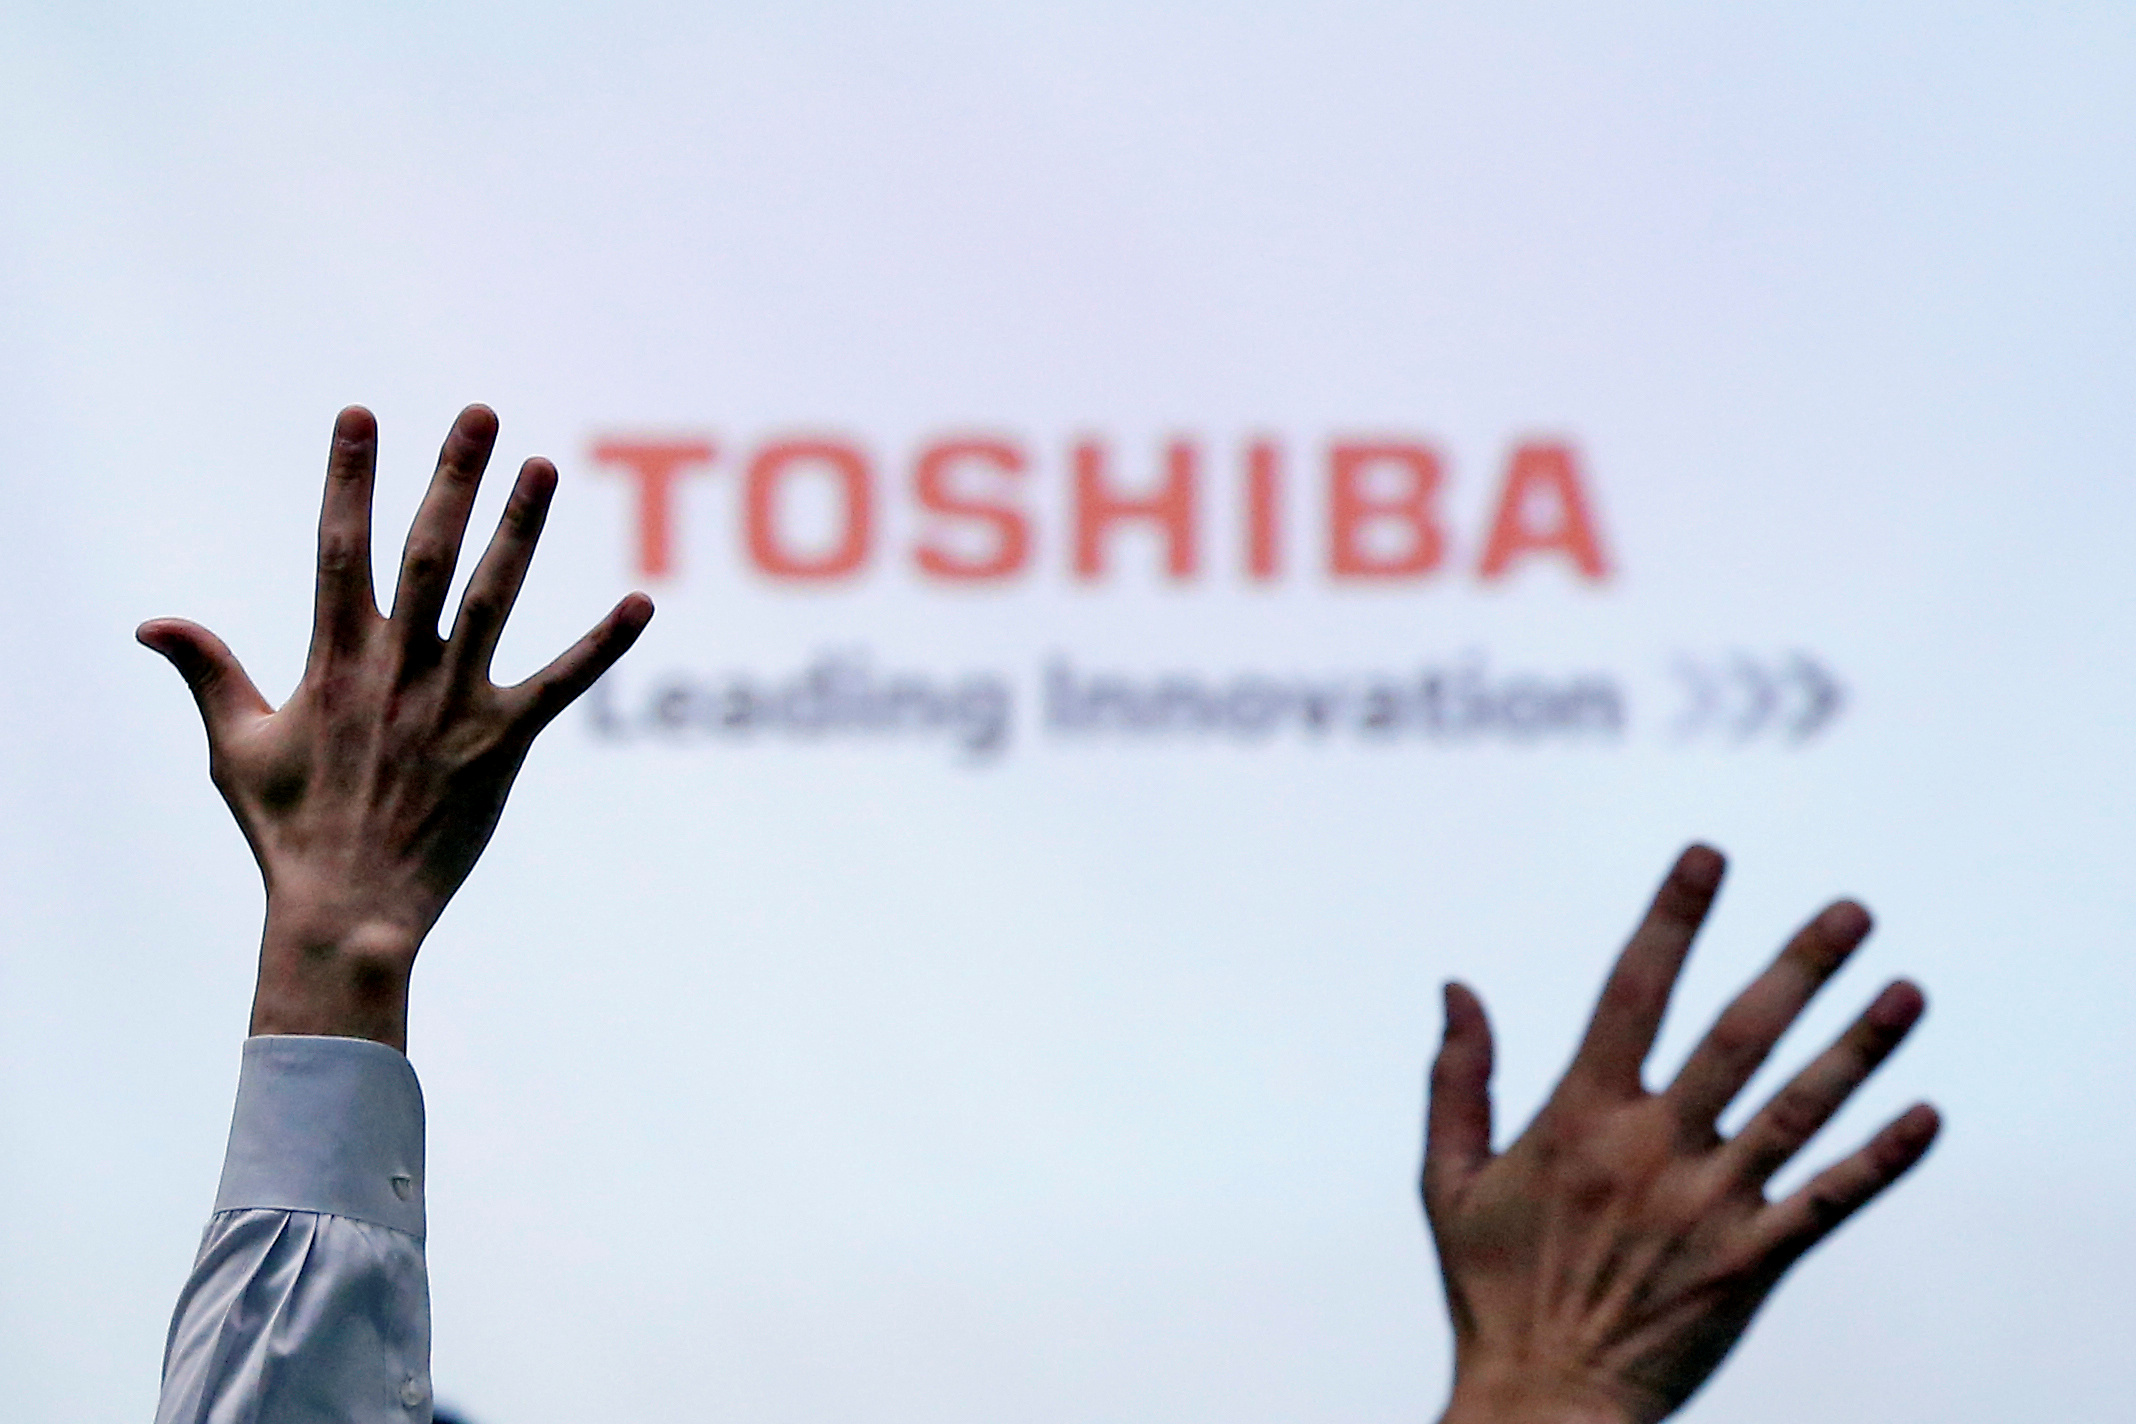 Reporters raise their hands during a Toshiba news conference at the company's headquarters in Tokyo, Japan June 23, 2017.  REUTERS/Issei Kato/File Photo